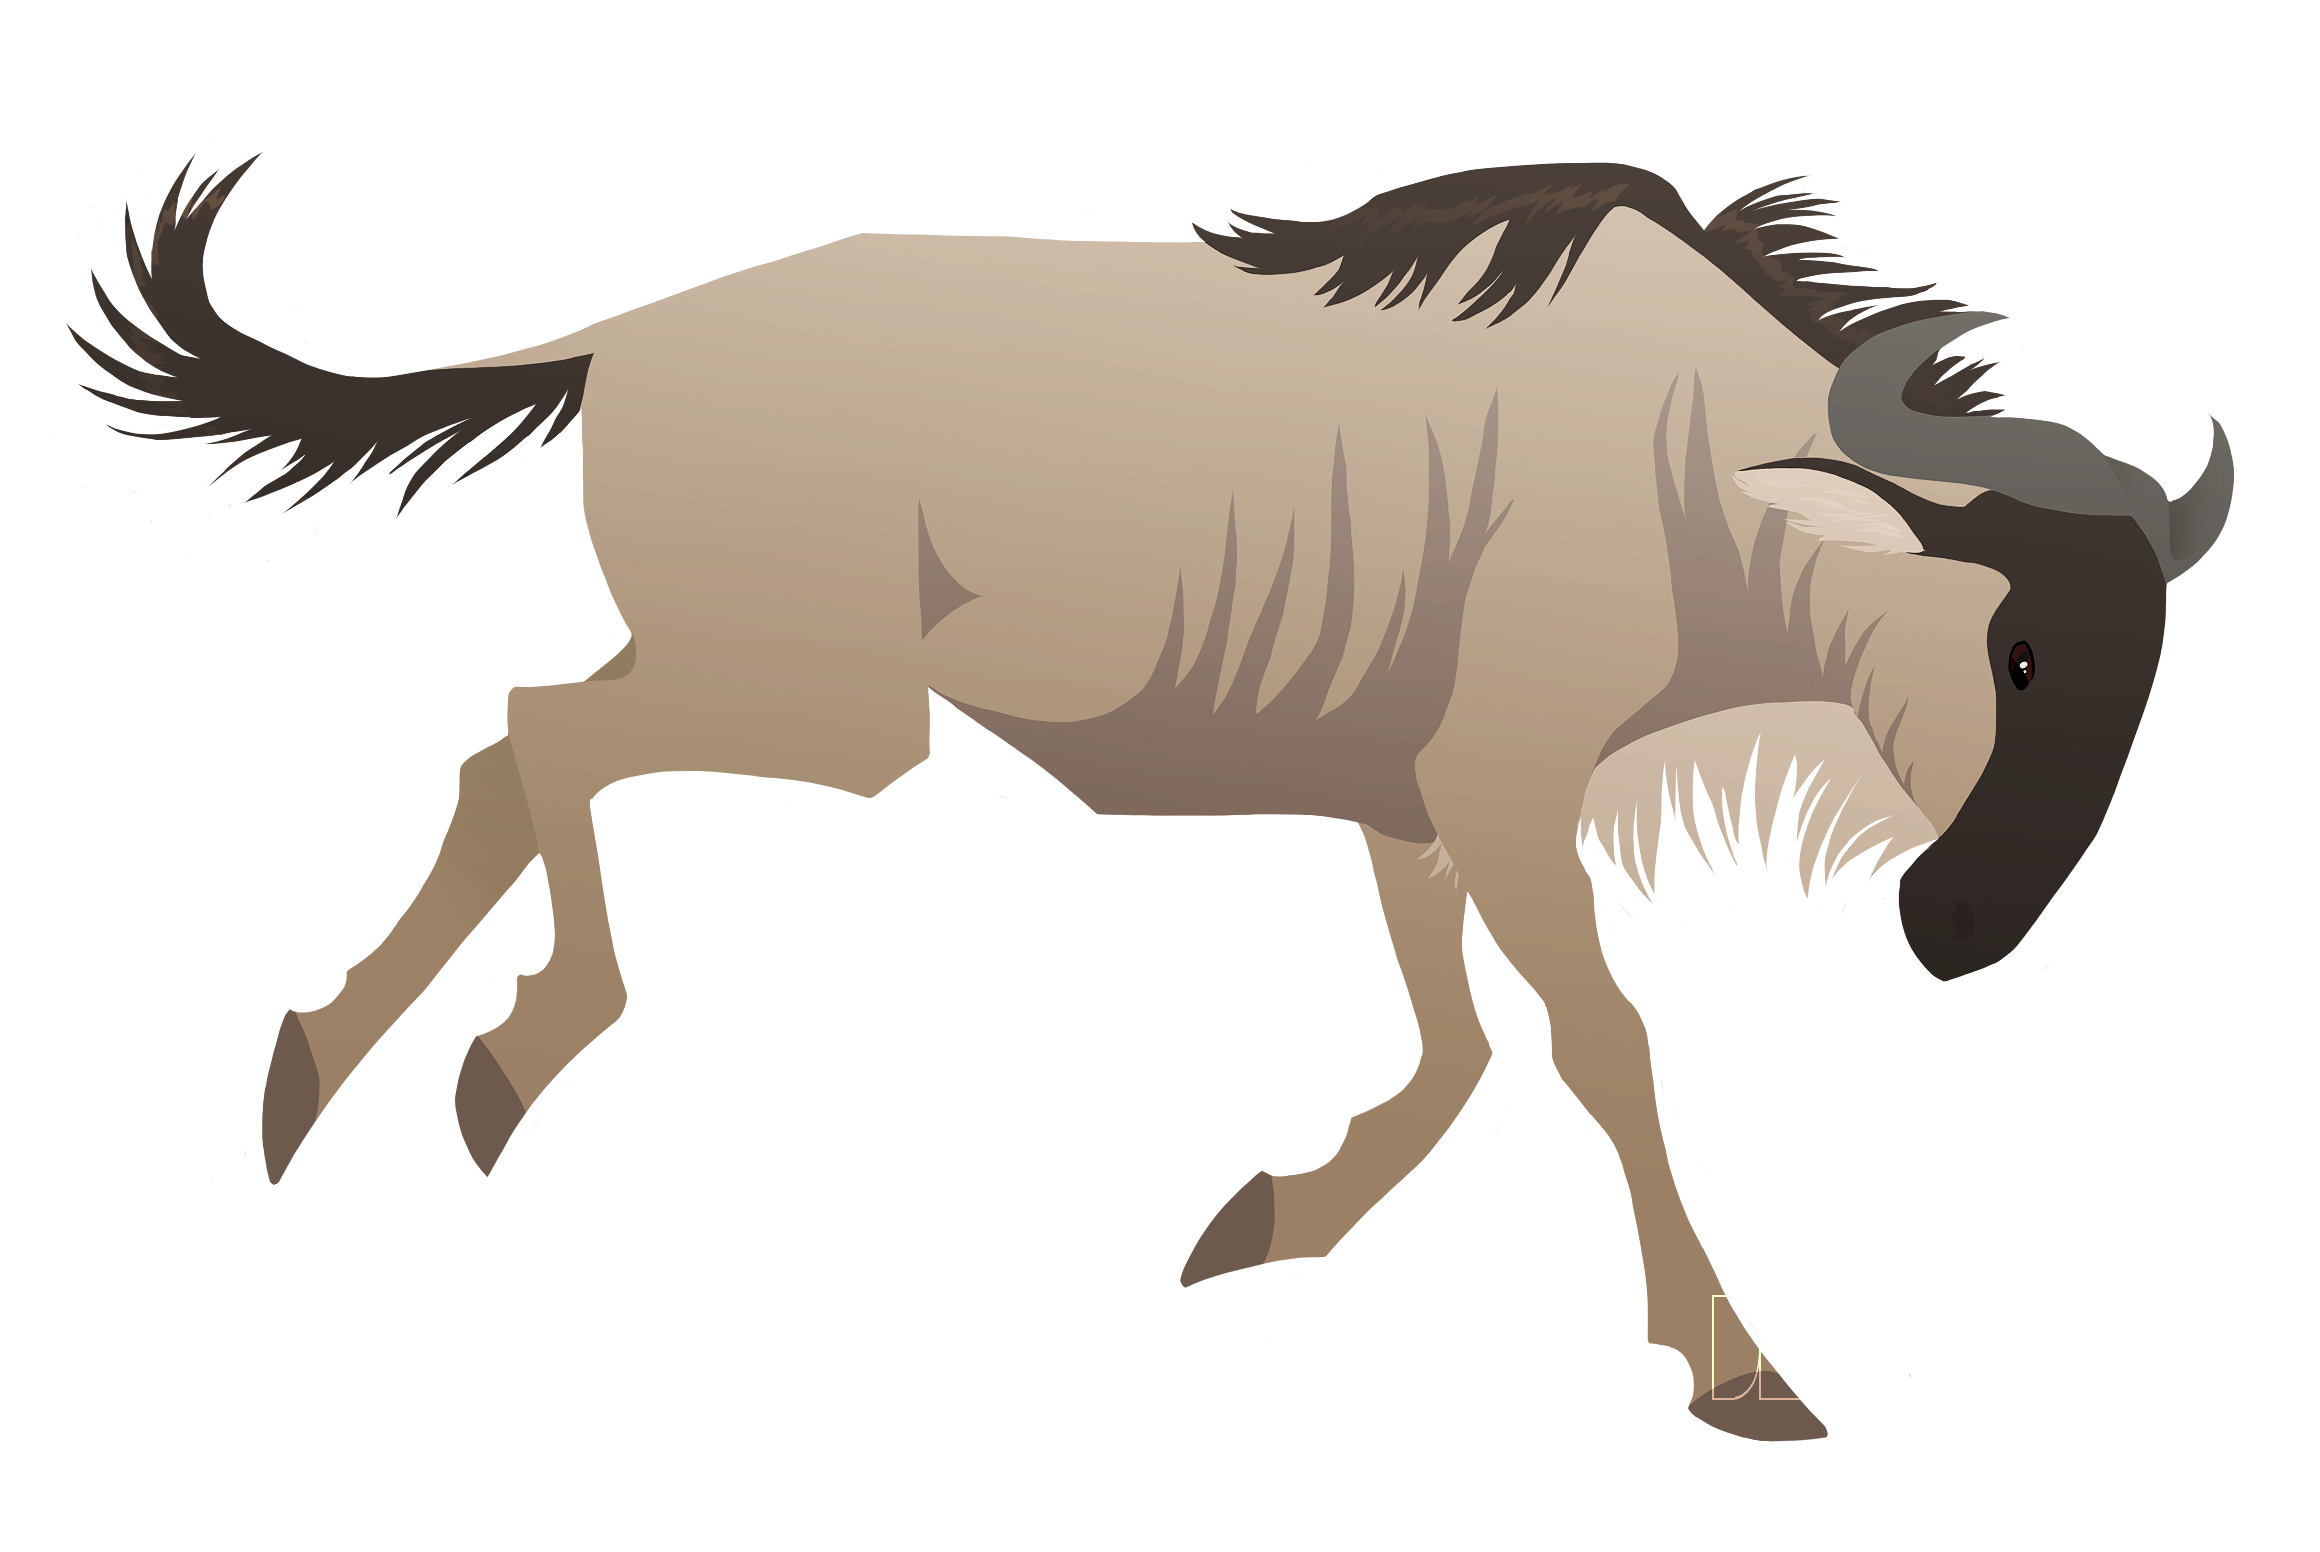 Blue Wildebeest clipart #2, Download drawings